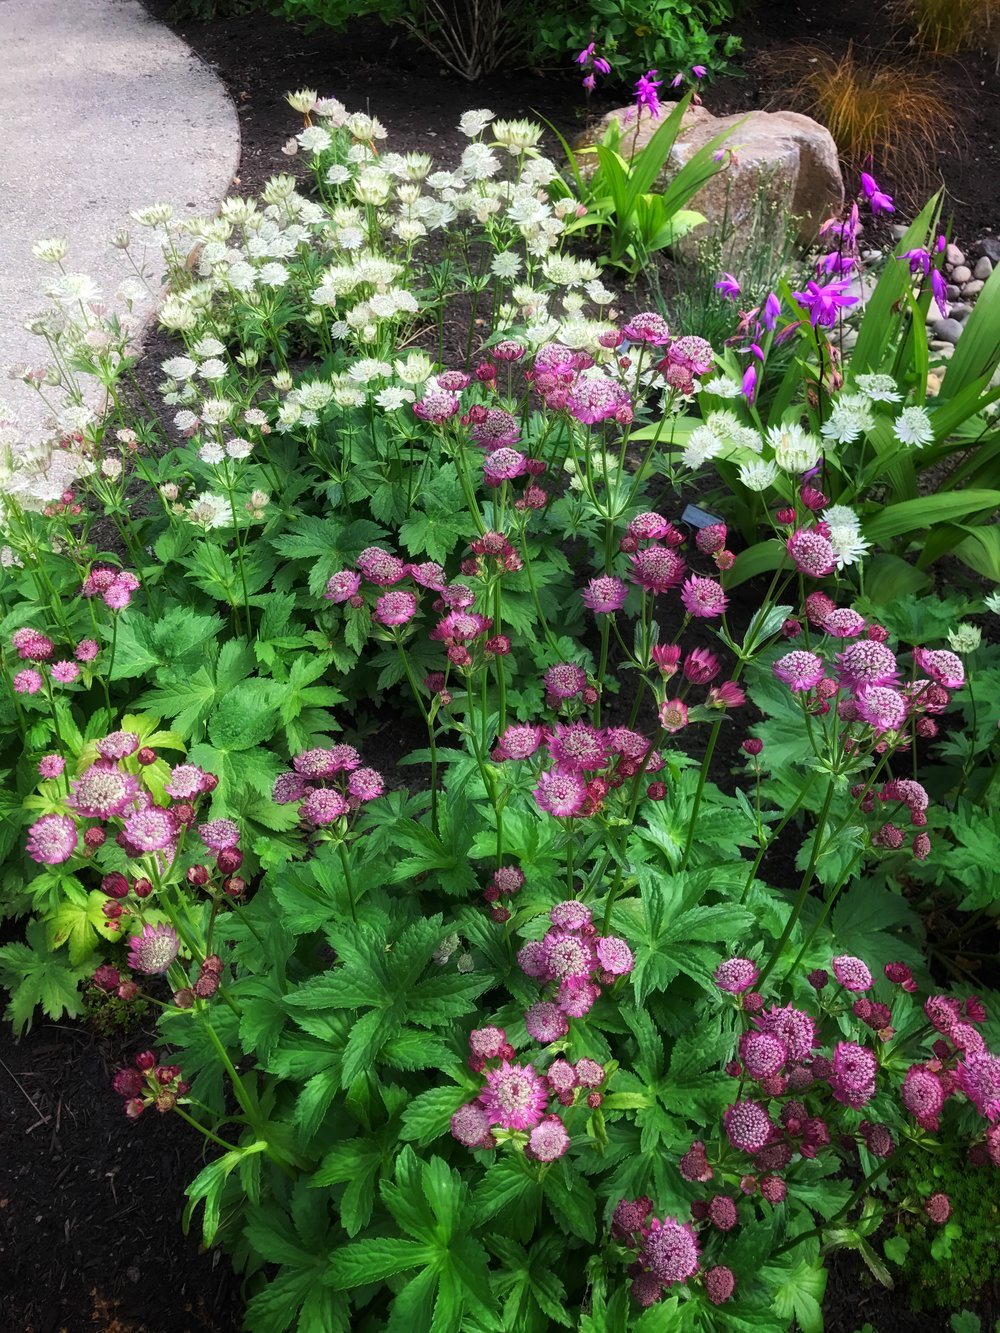 Two colors of Astrantia, looking great together.